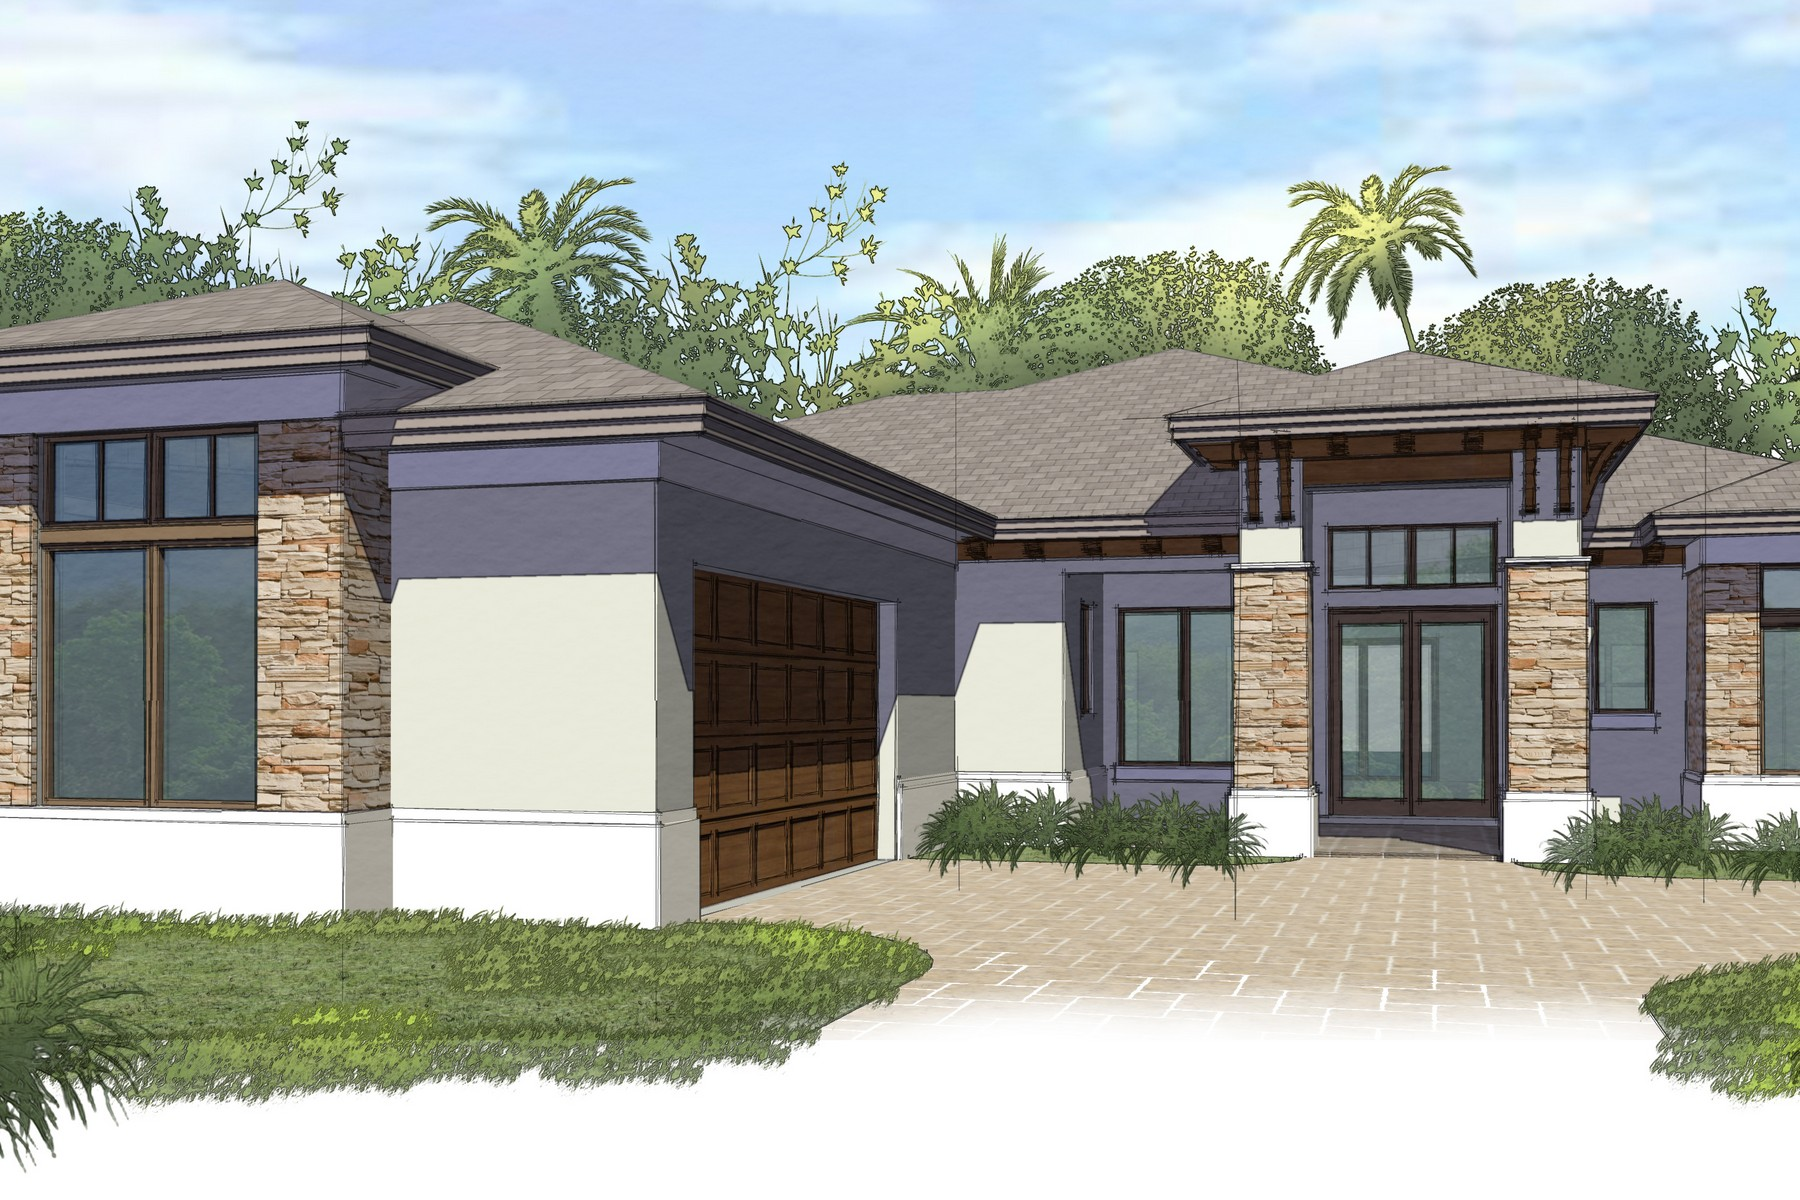 一戸建て のために 売買 アット Resort Living in Grand Harbor 2368 Grand Harbor Reserve Square Vero Beach, フロリダ 32967 アメリカ